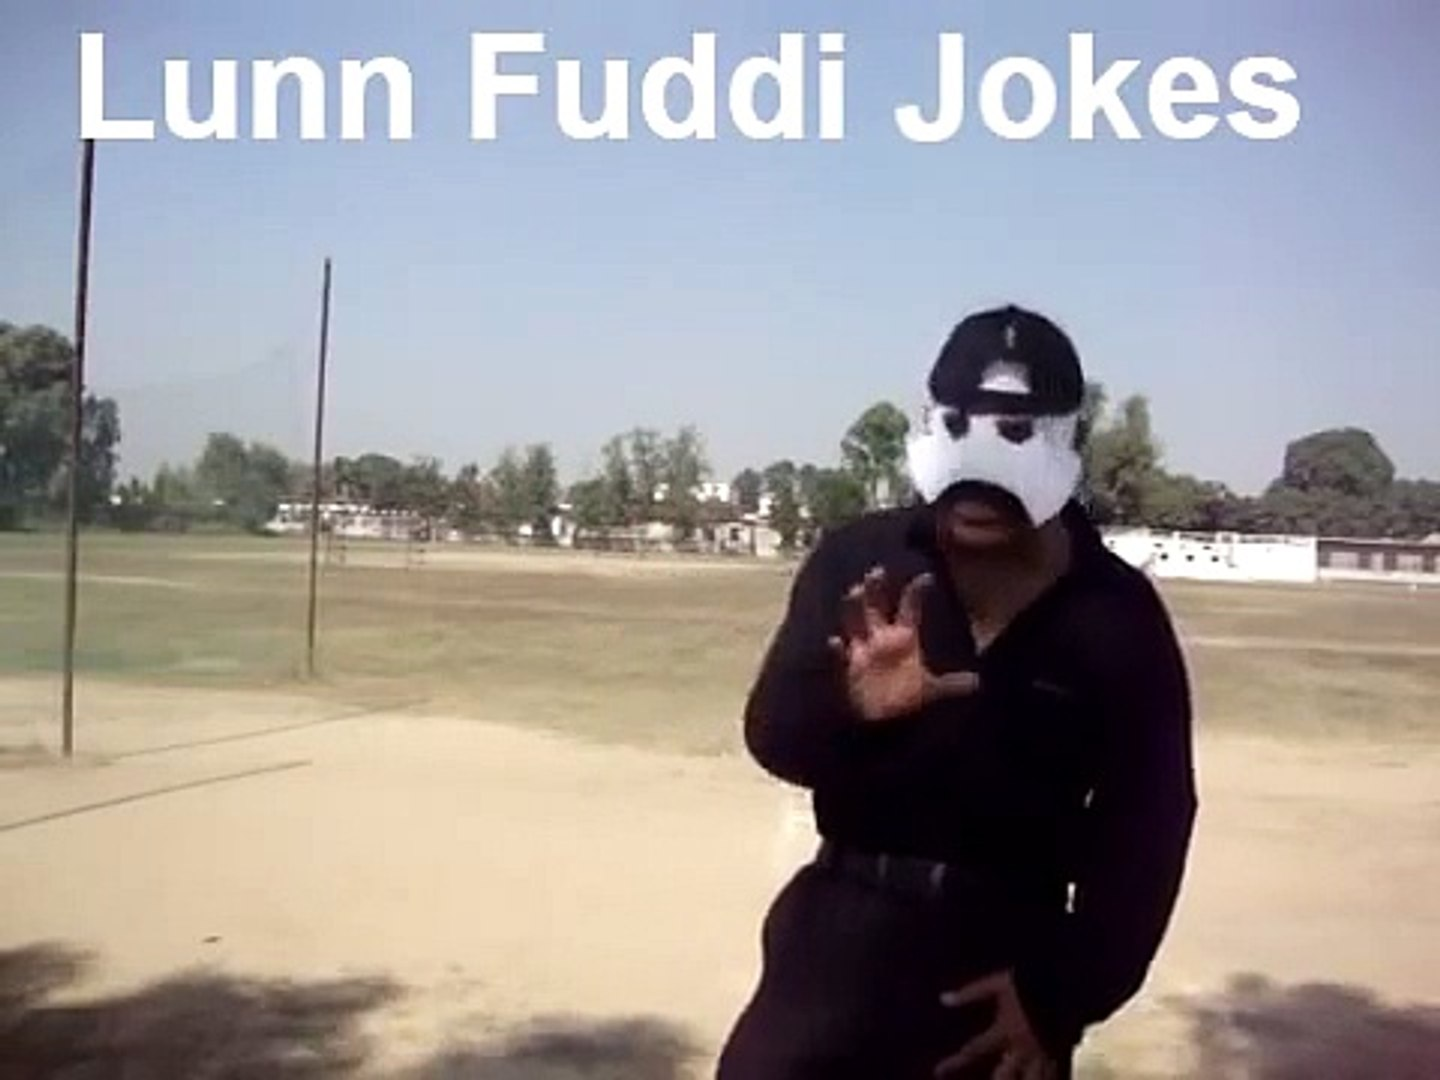 Funny Adult Sexy Video lunnfuddijokes.(part-3)dirty adult punjabi joke comedy